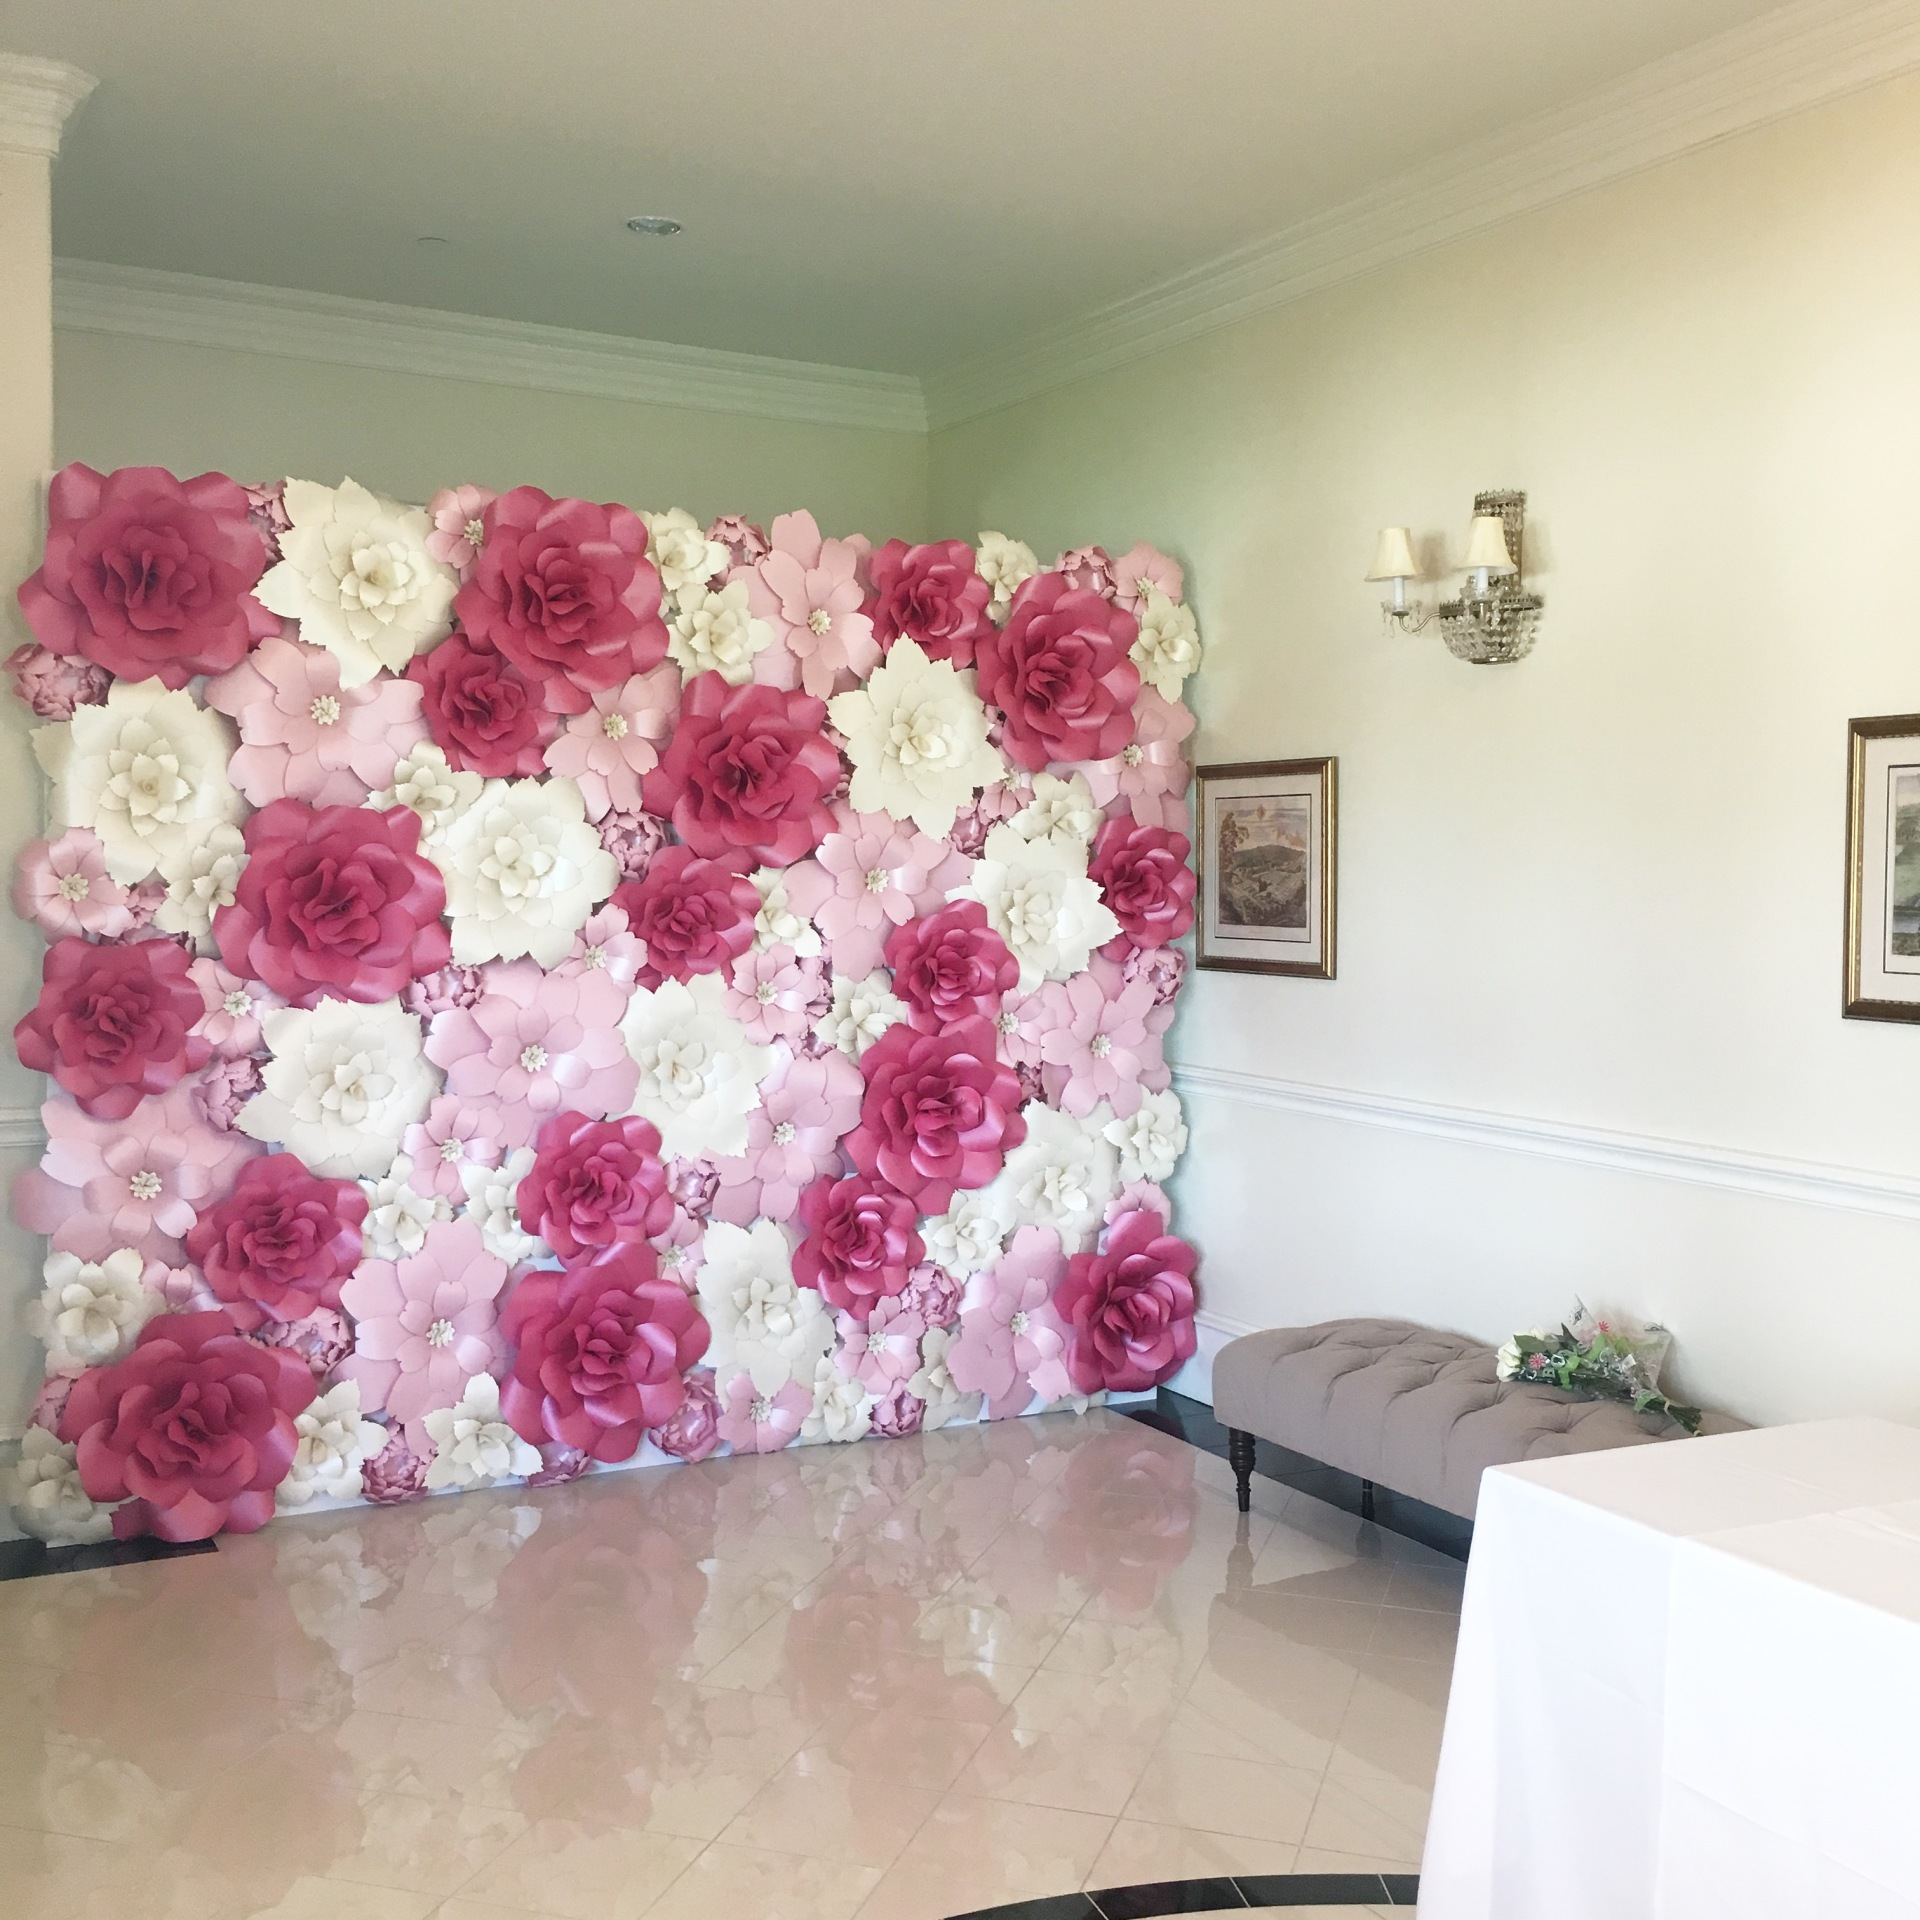 Paper flower wall. flower wall. Paper flower wall rental. Event rental. Backdrop rental. paper flower wall rental. houston paper flowers. wedding ceremony backdrop. sweetheart table backdrop. photobooth backdrop. photo backdrop. personalized. quinceanera. bridal shower. baptism.